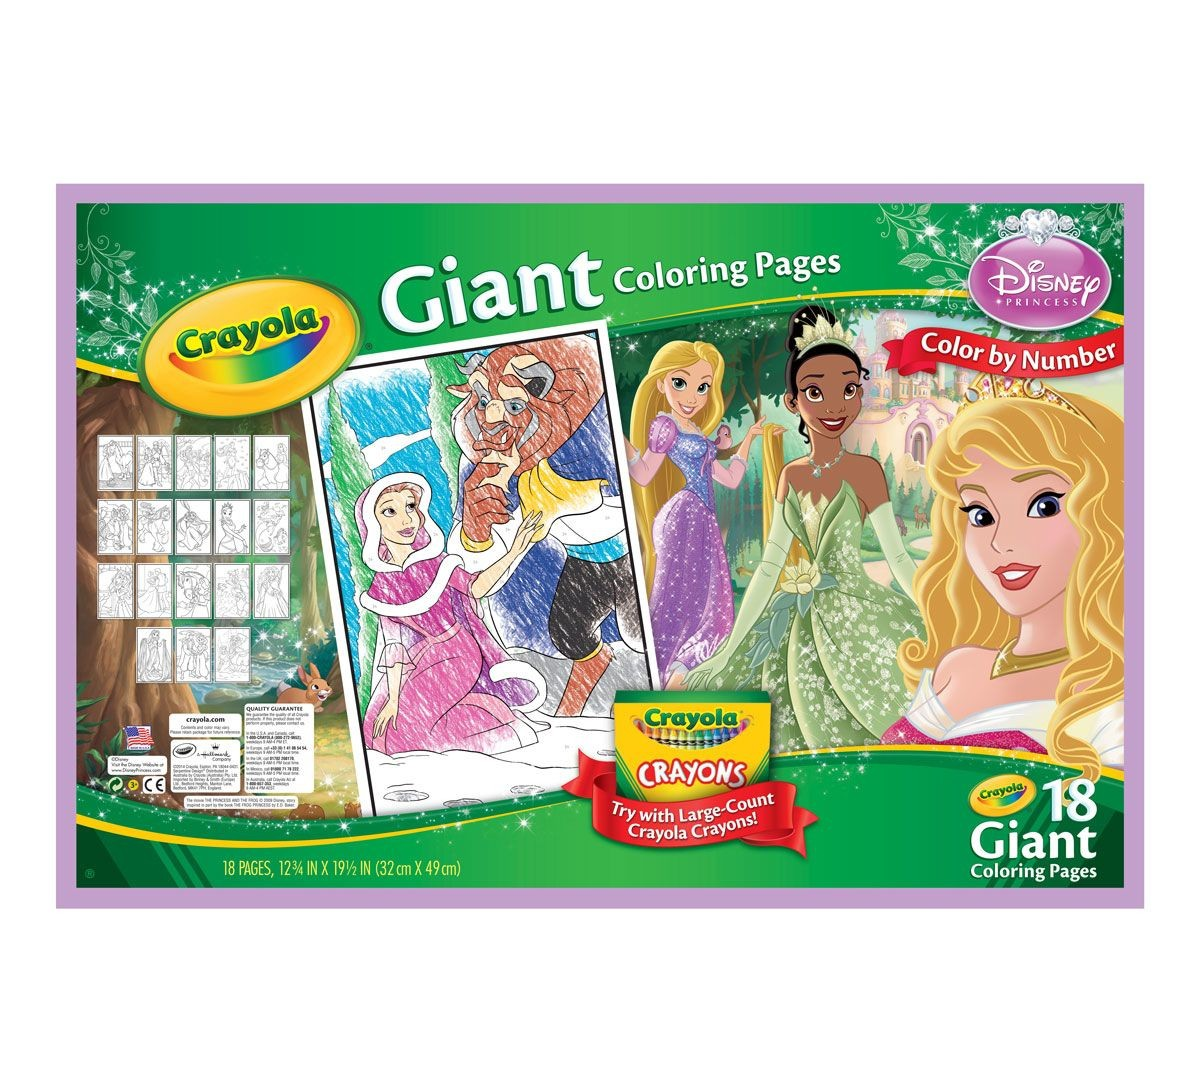 disney-princess-giant-coloring-pages-of-disney-princess-giant-coloring-pages Disney Princess Giant Coloring Pages Cartoon